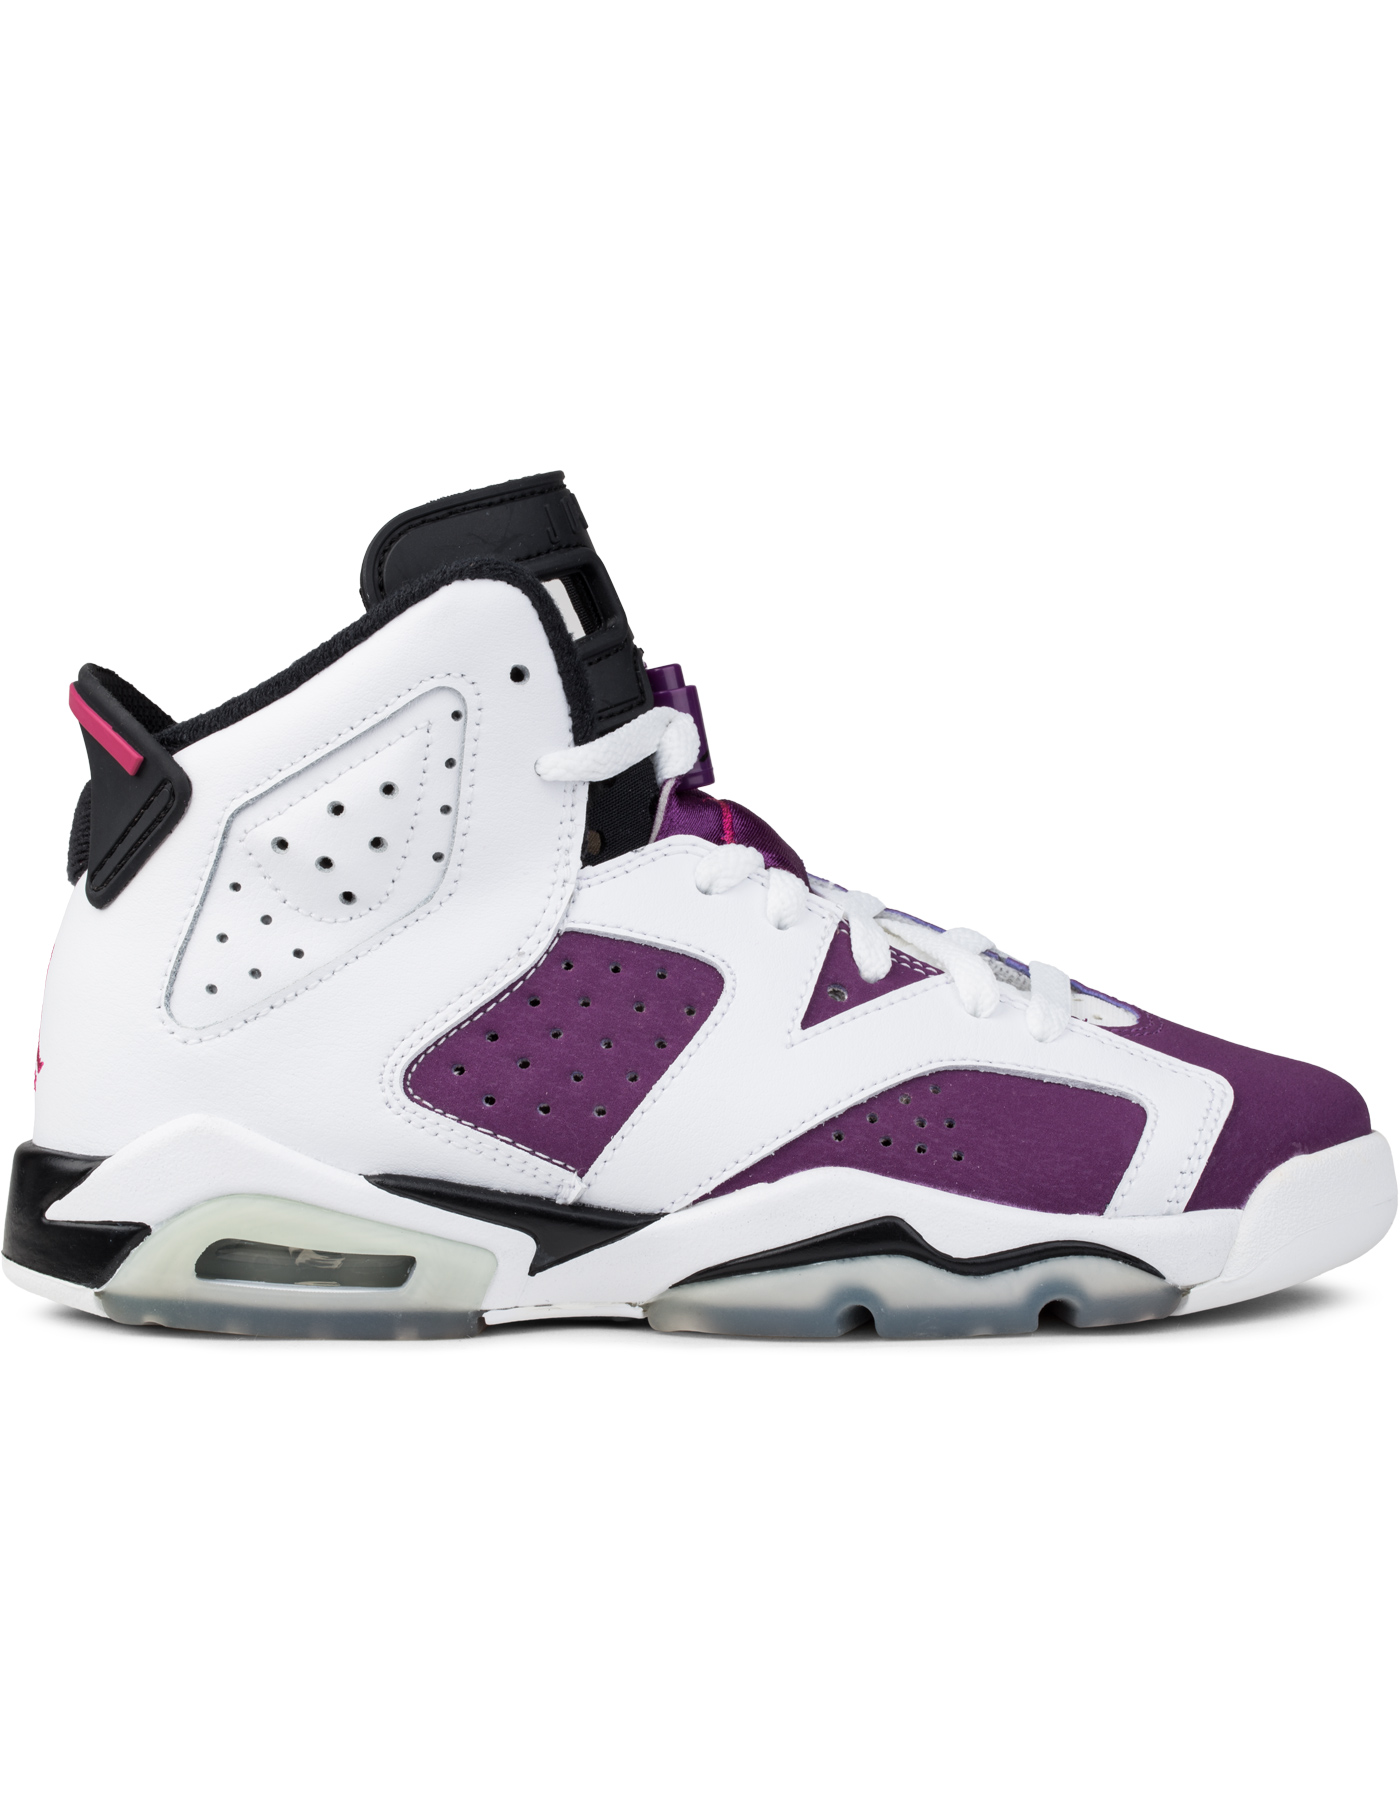 "Jordan Brand Air Jordan 6 ""White Bright Grape"" GS"